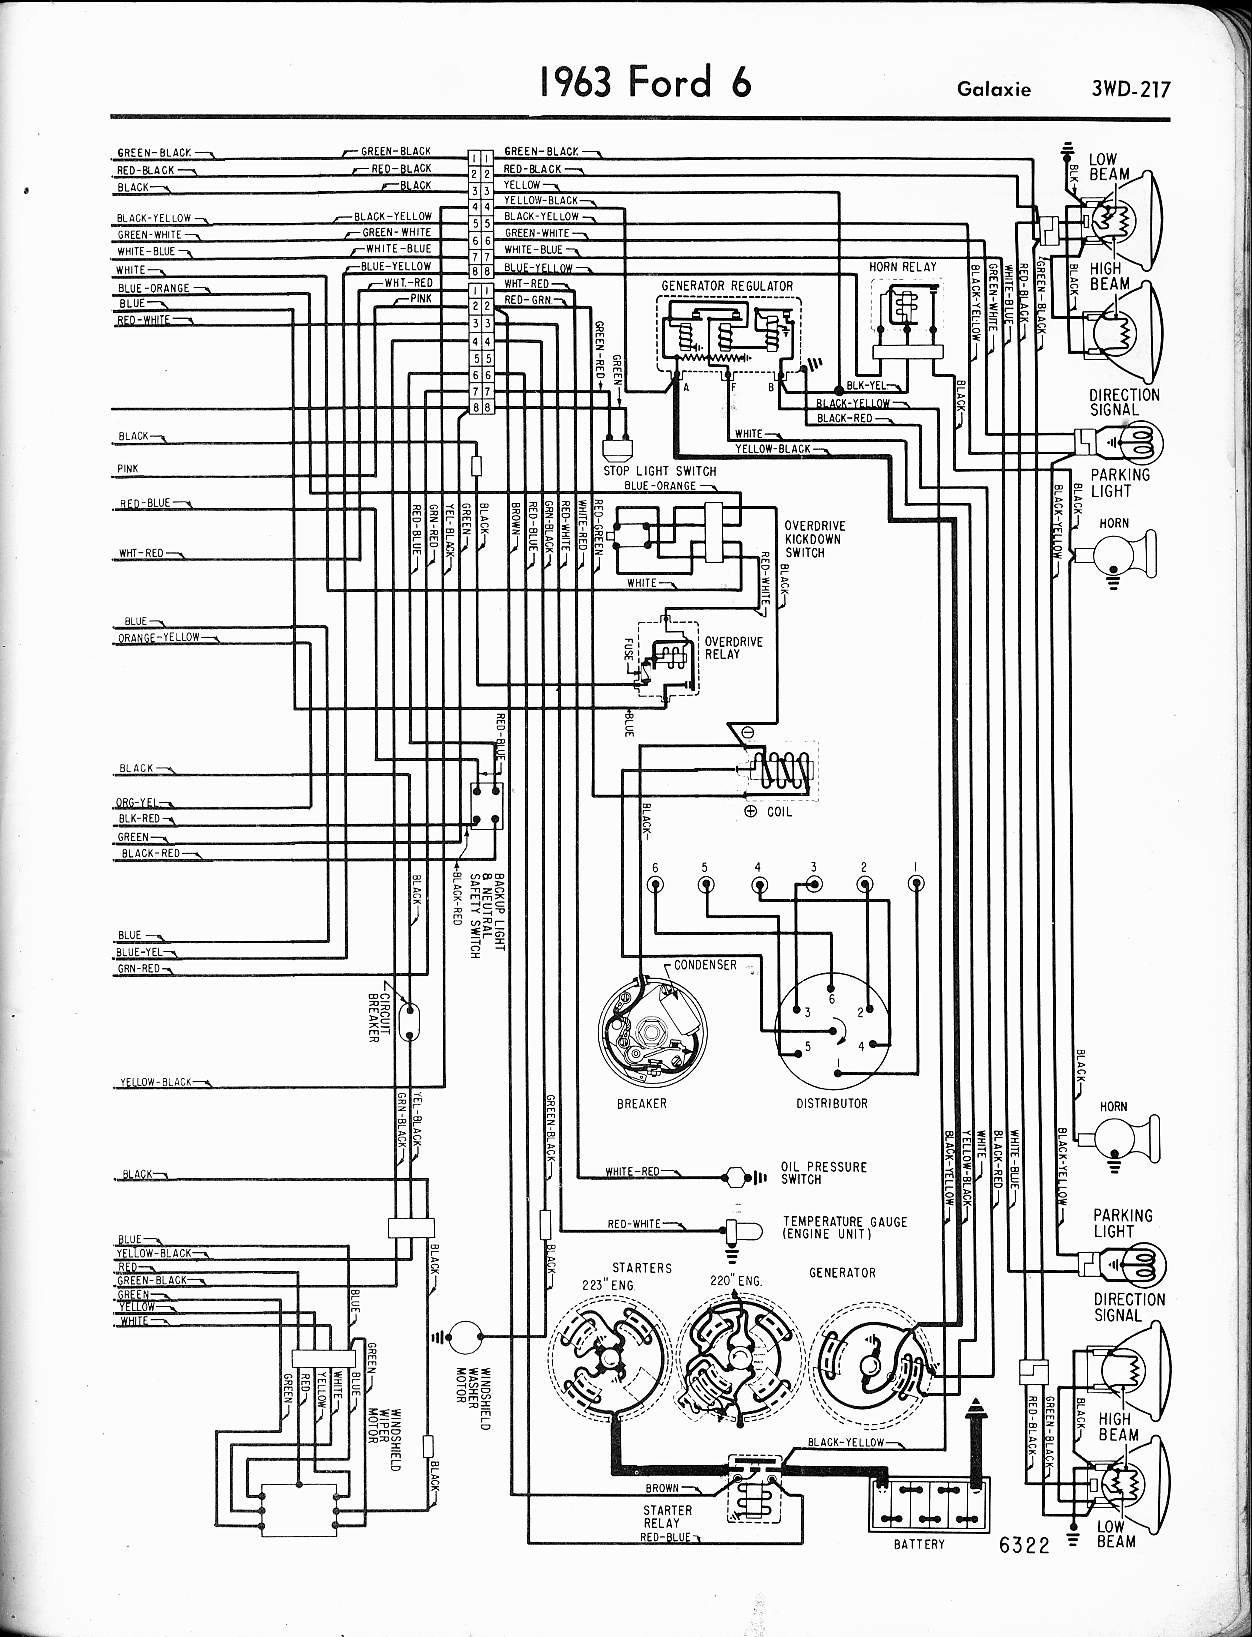 62 Galaxie Underhood Wiring Diagram,Underhood • Couponss.co